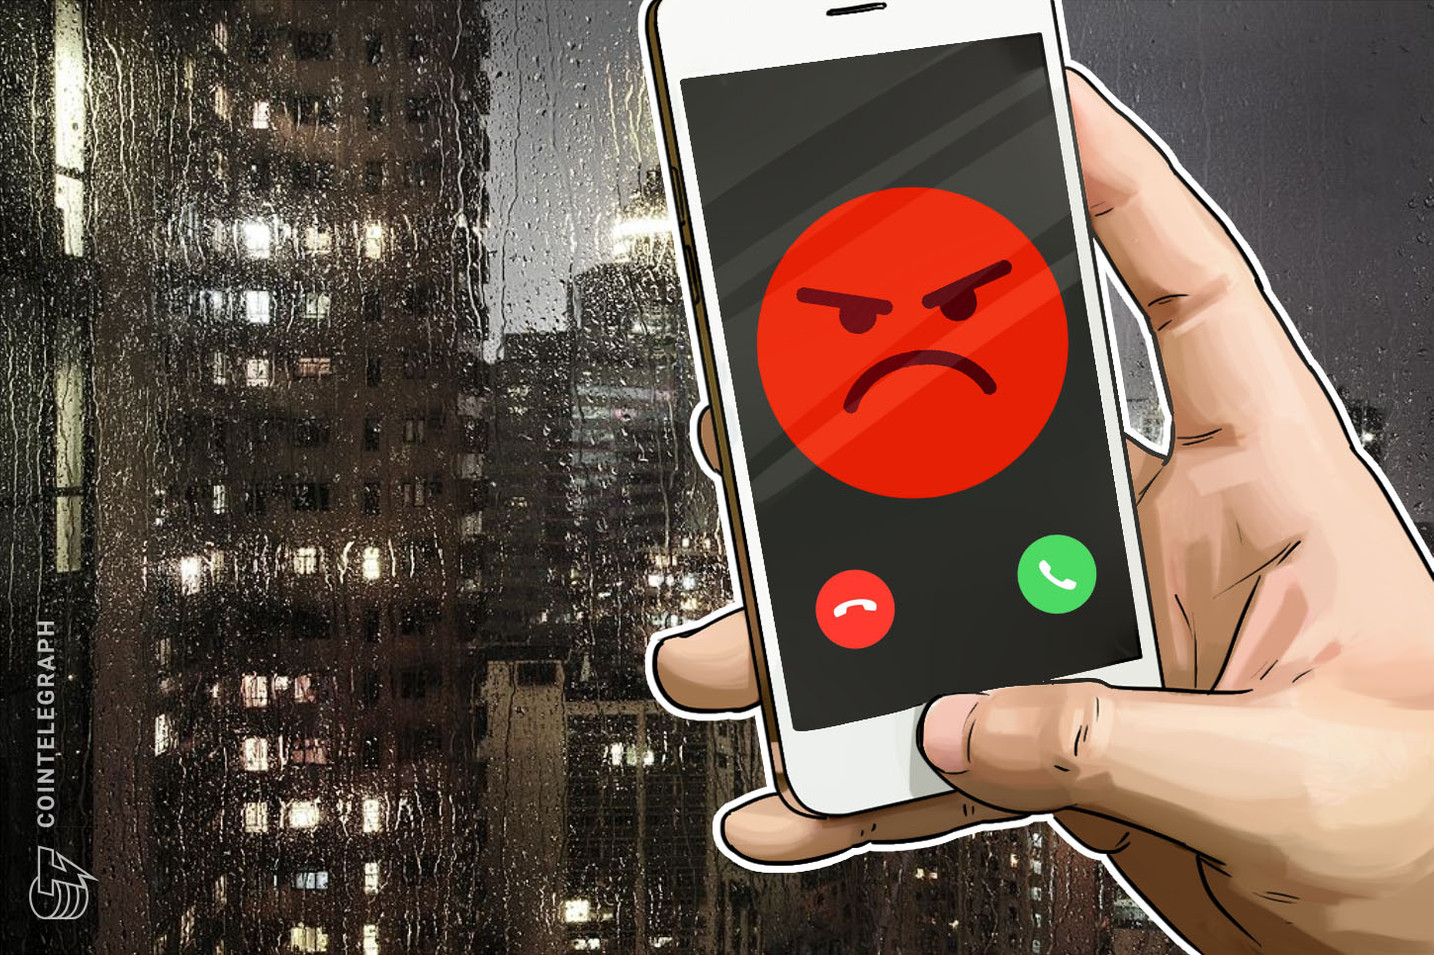 Research Firm Messari CEO: Threatening Calls After Critical XRP Report Were Made by 'Punk Kids'